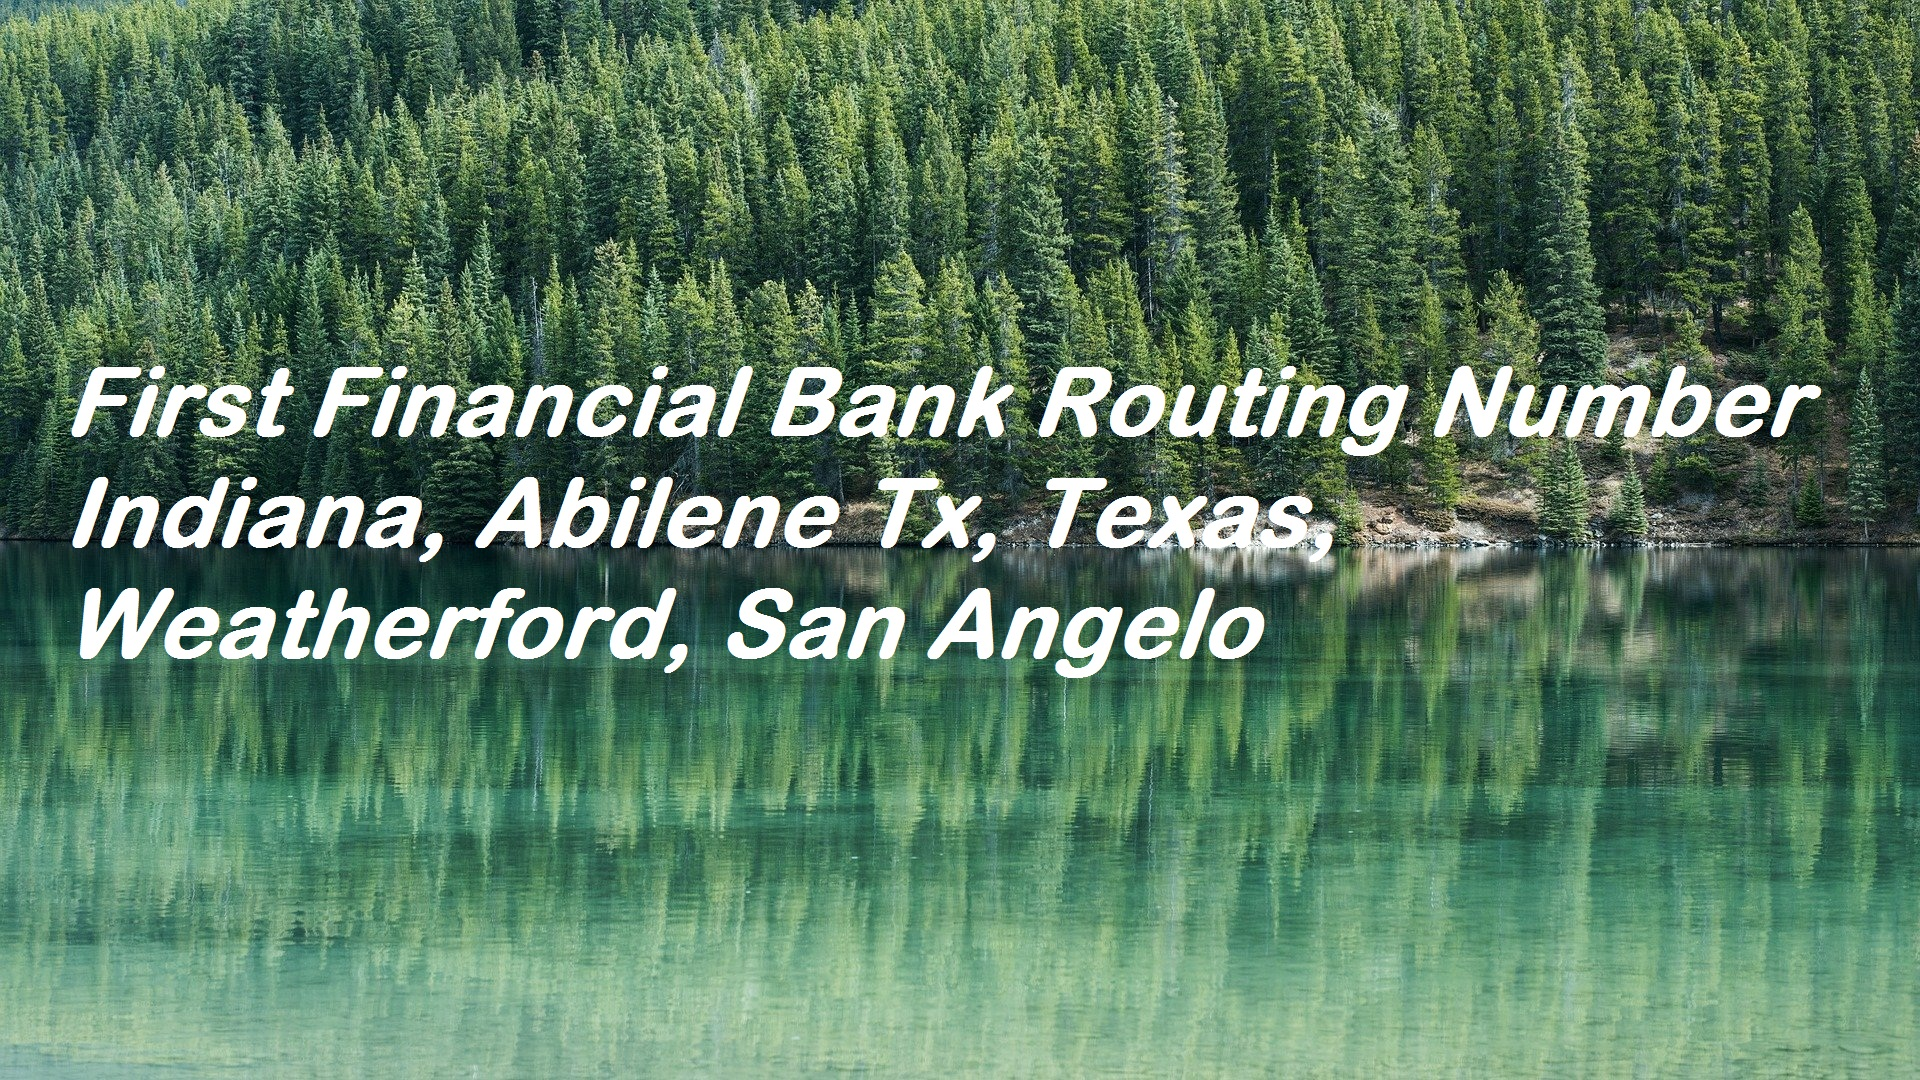 First Financial Bank Routing Number